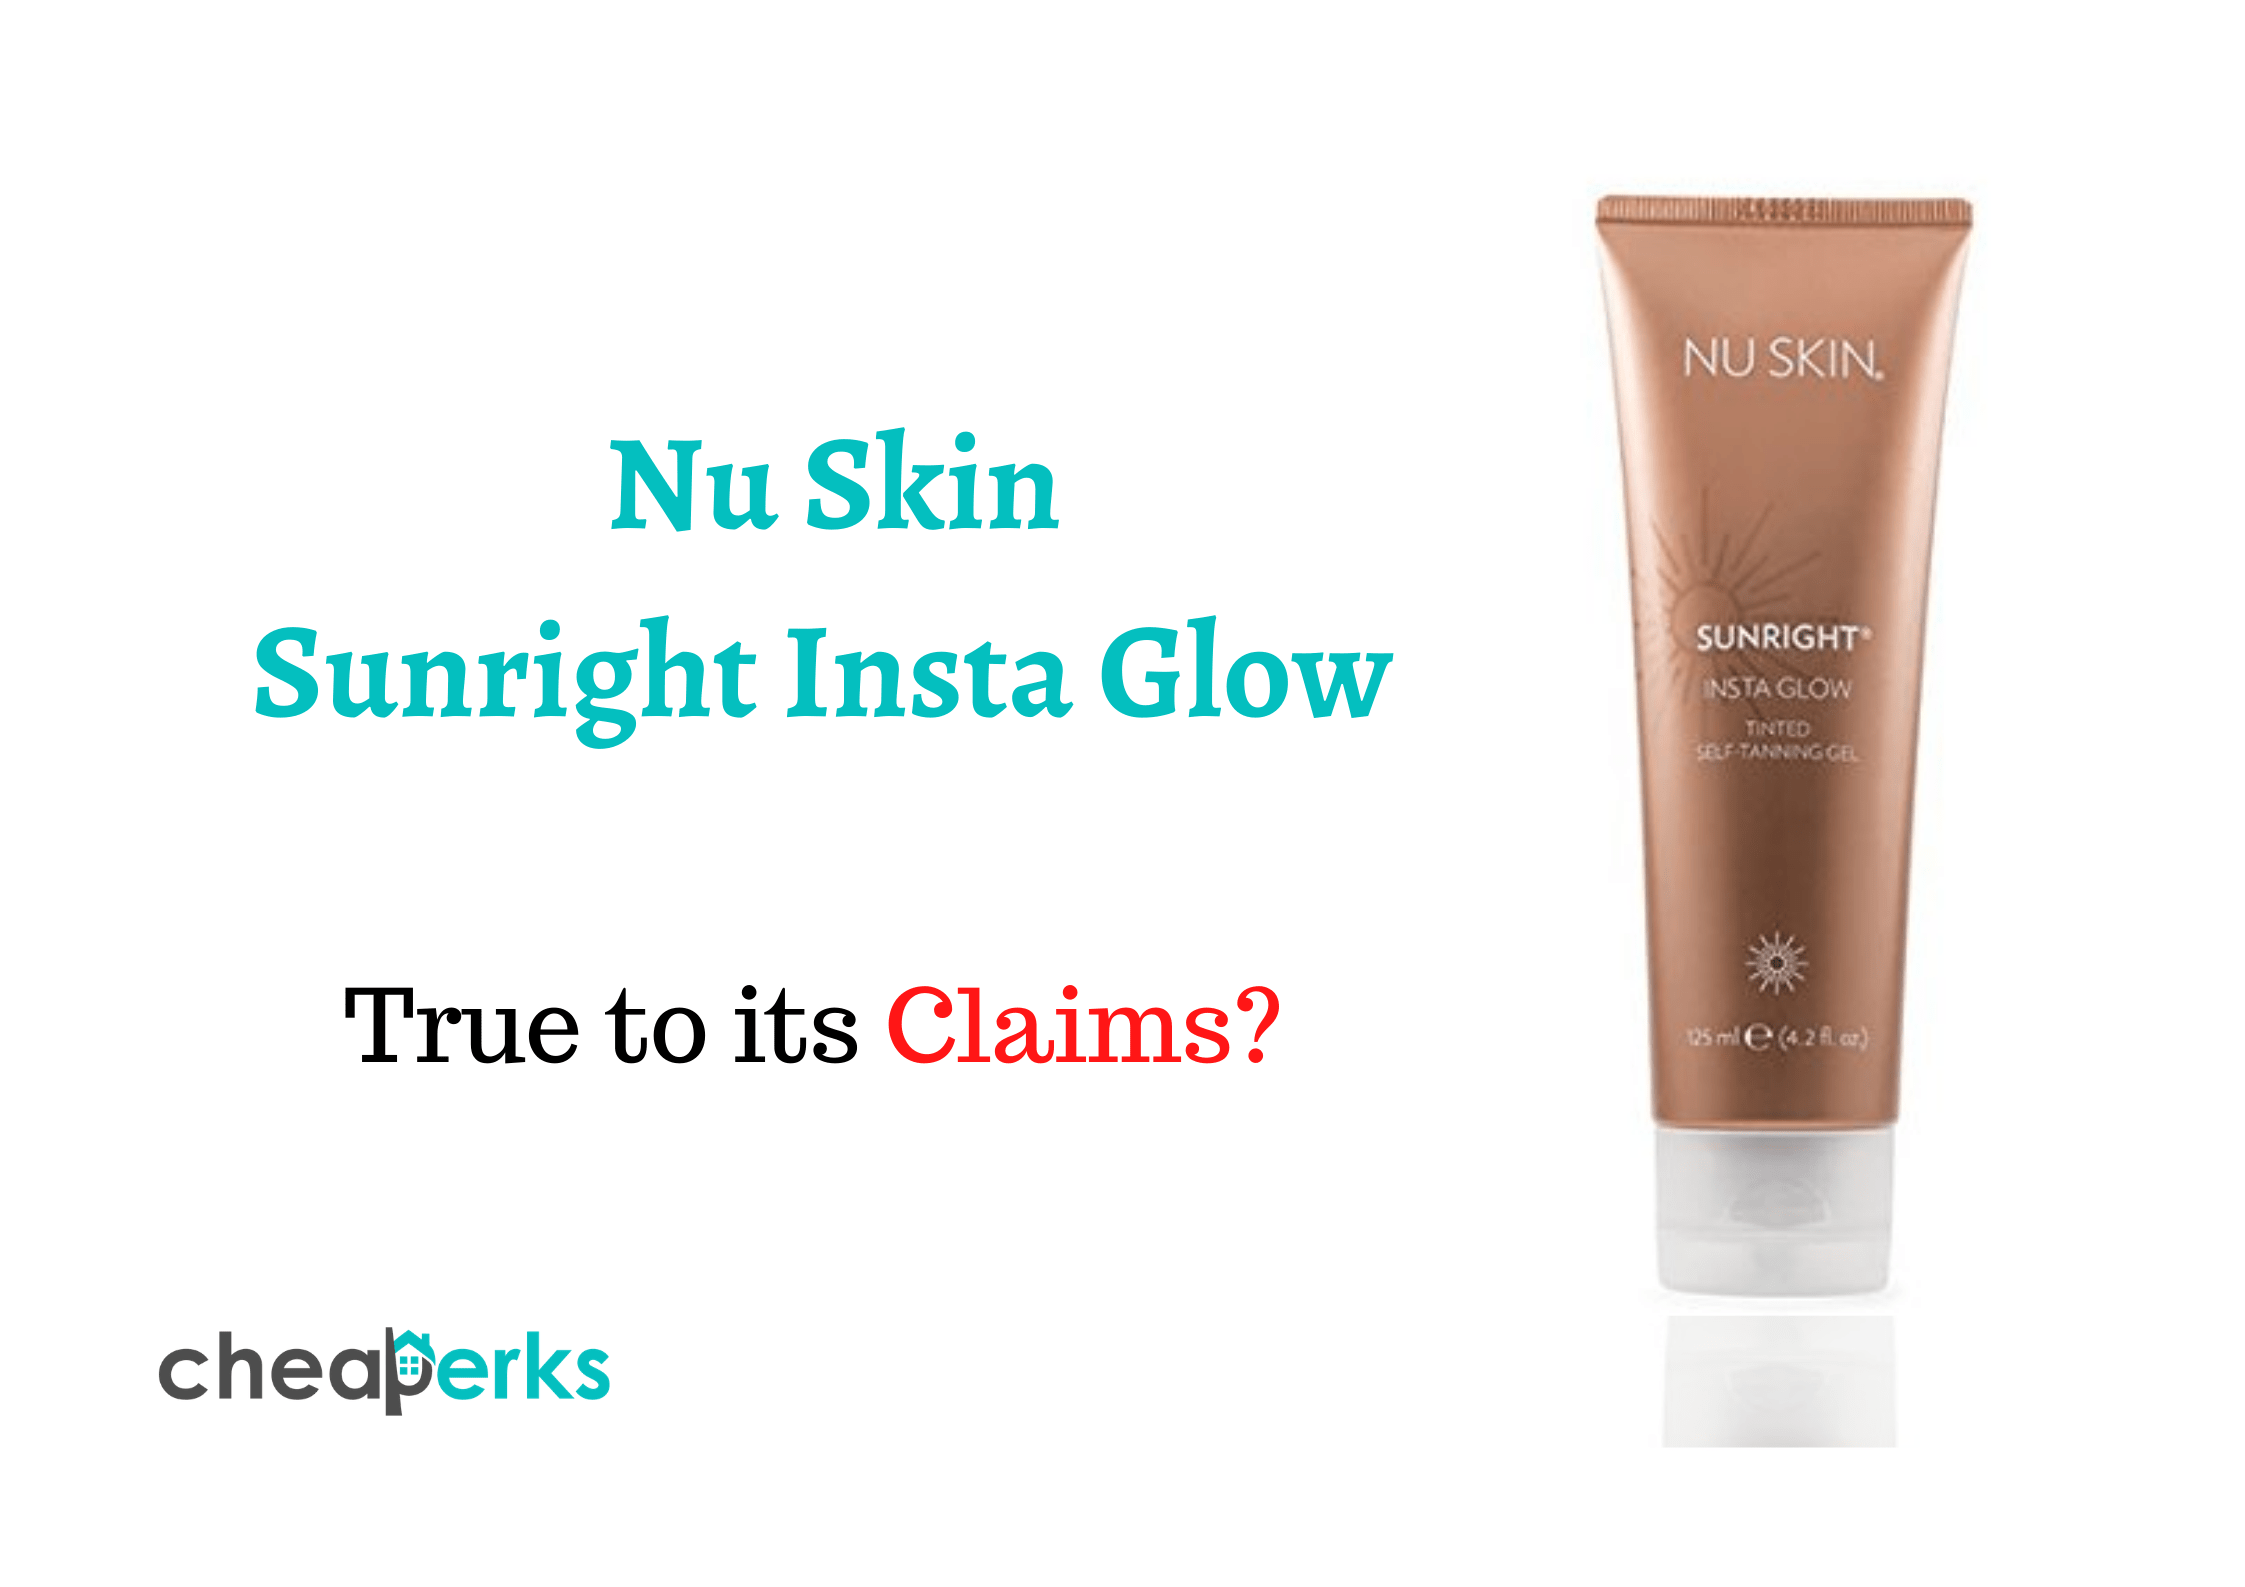 Nu Skin Sunright Insta Glow Reviews